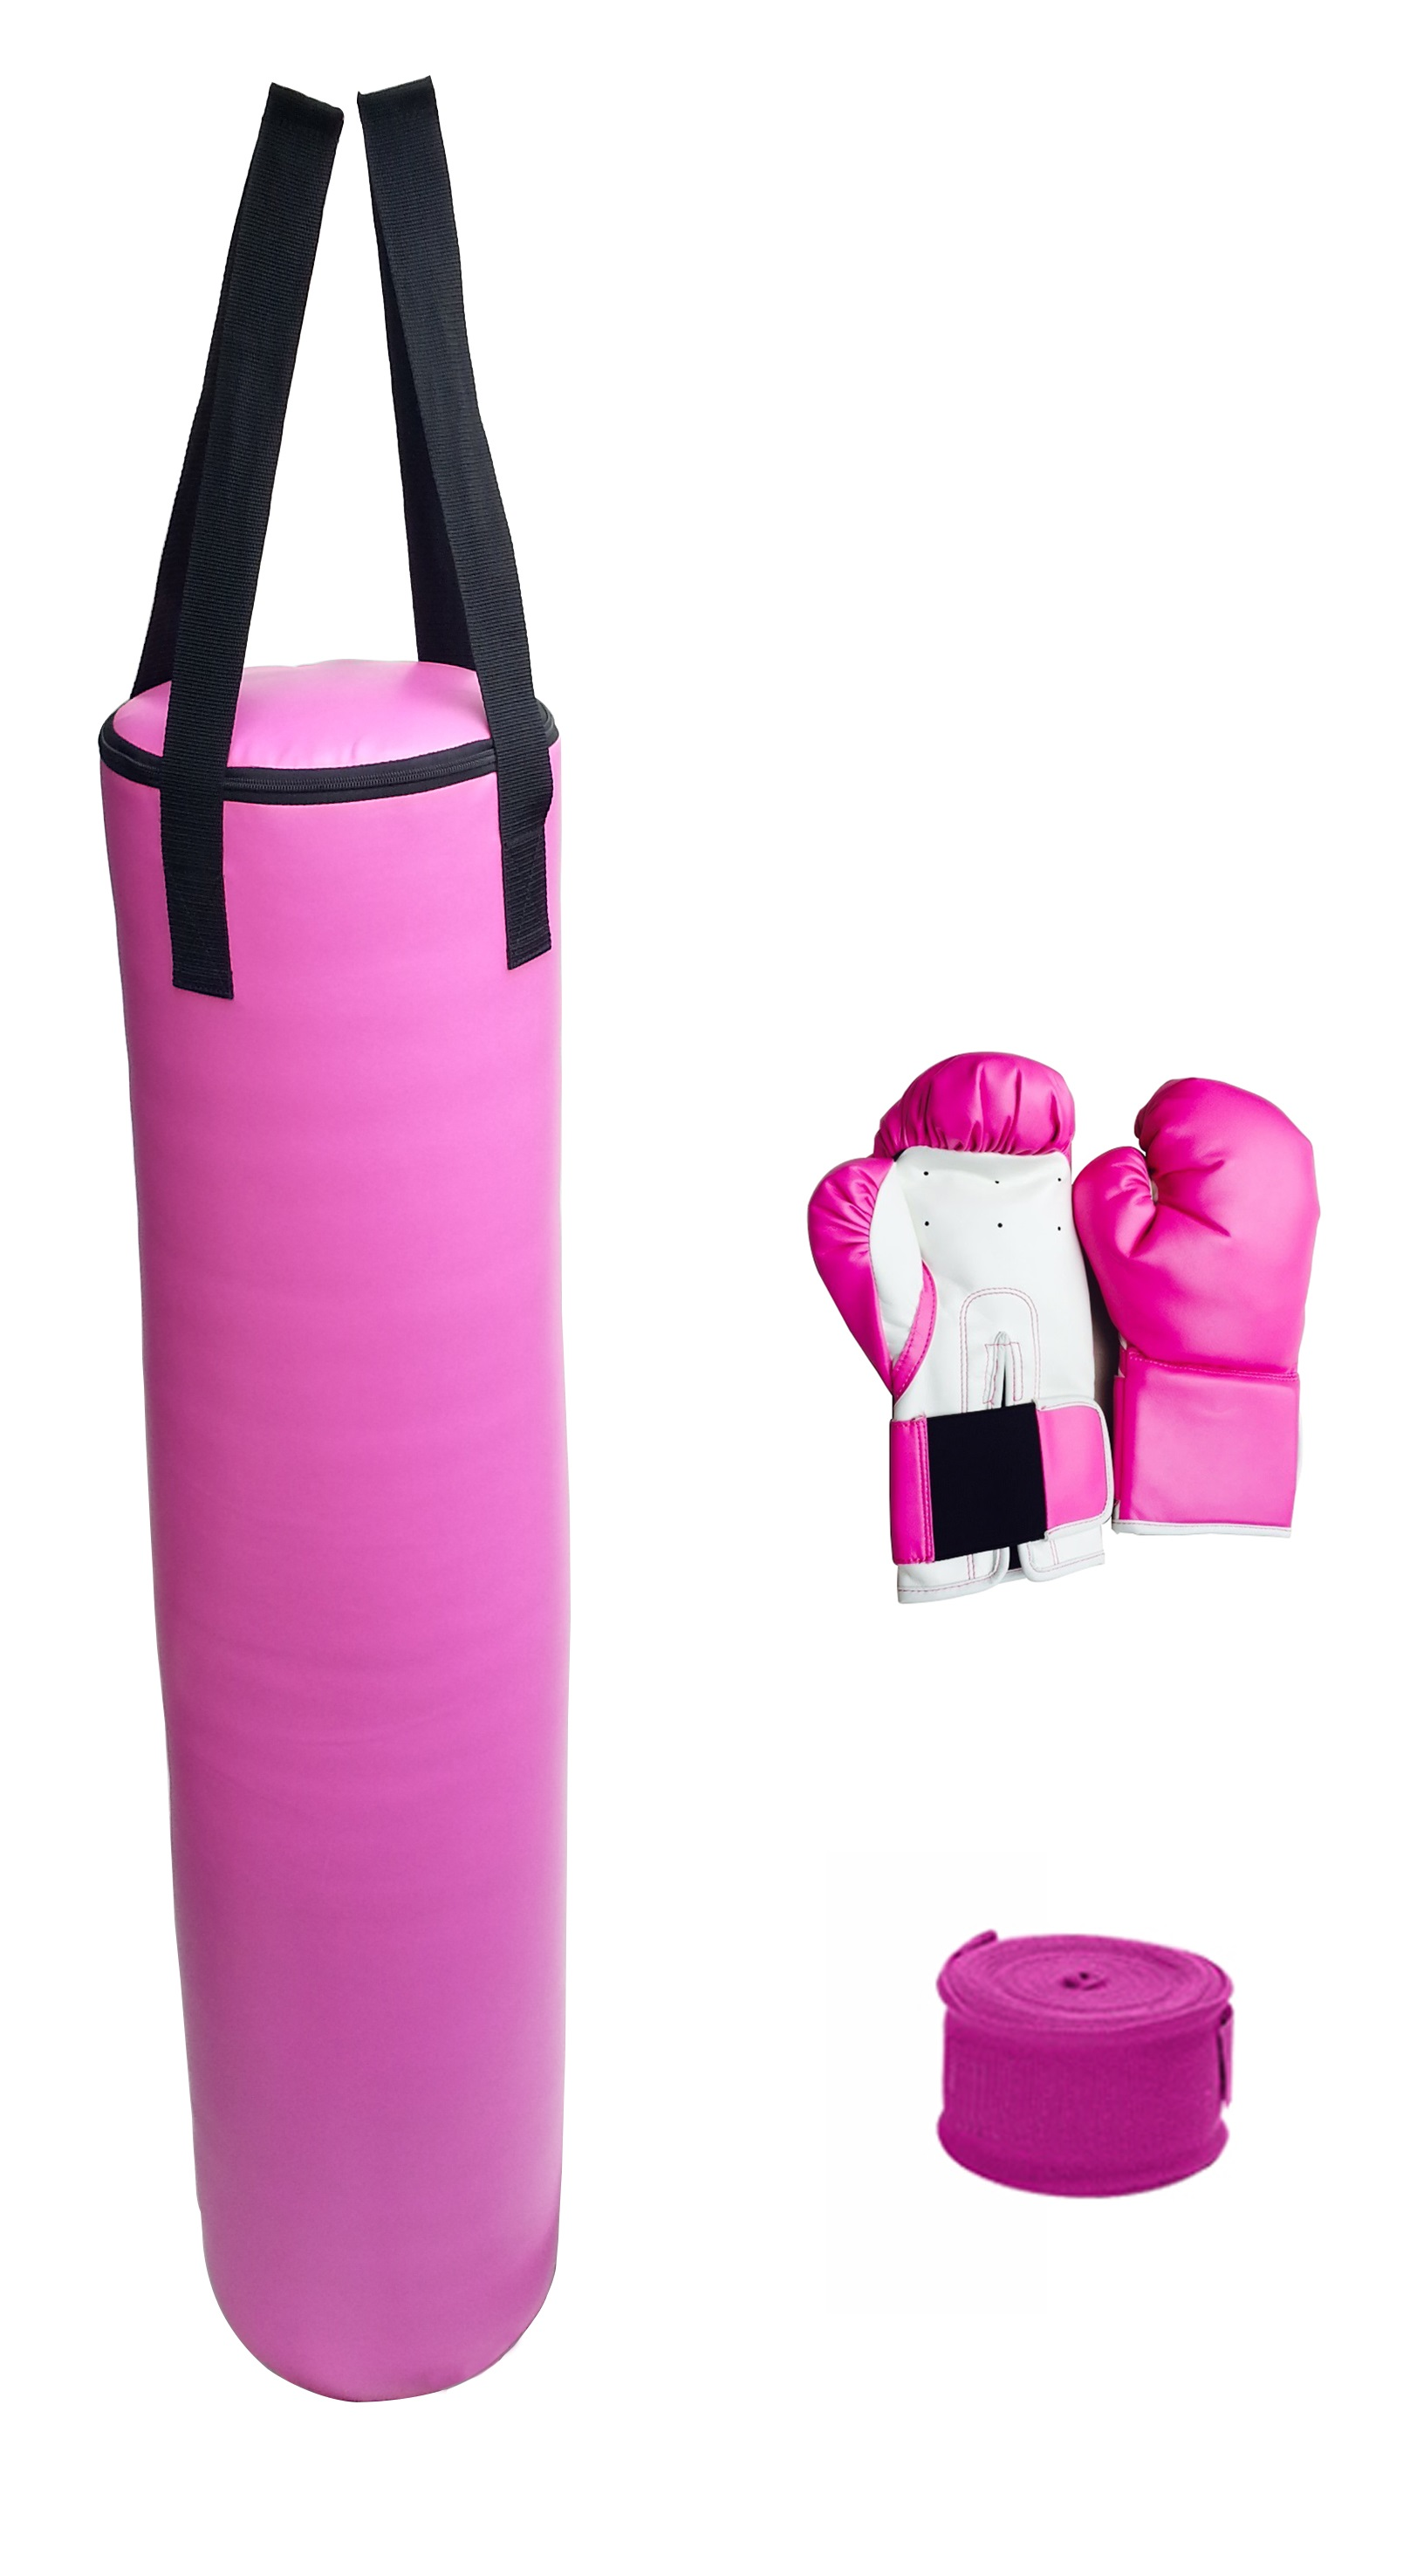 70lb Pink Heavy Bag Kit Punching Boxing Bag Gloves Hand Wraps  Z2668